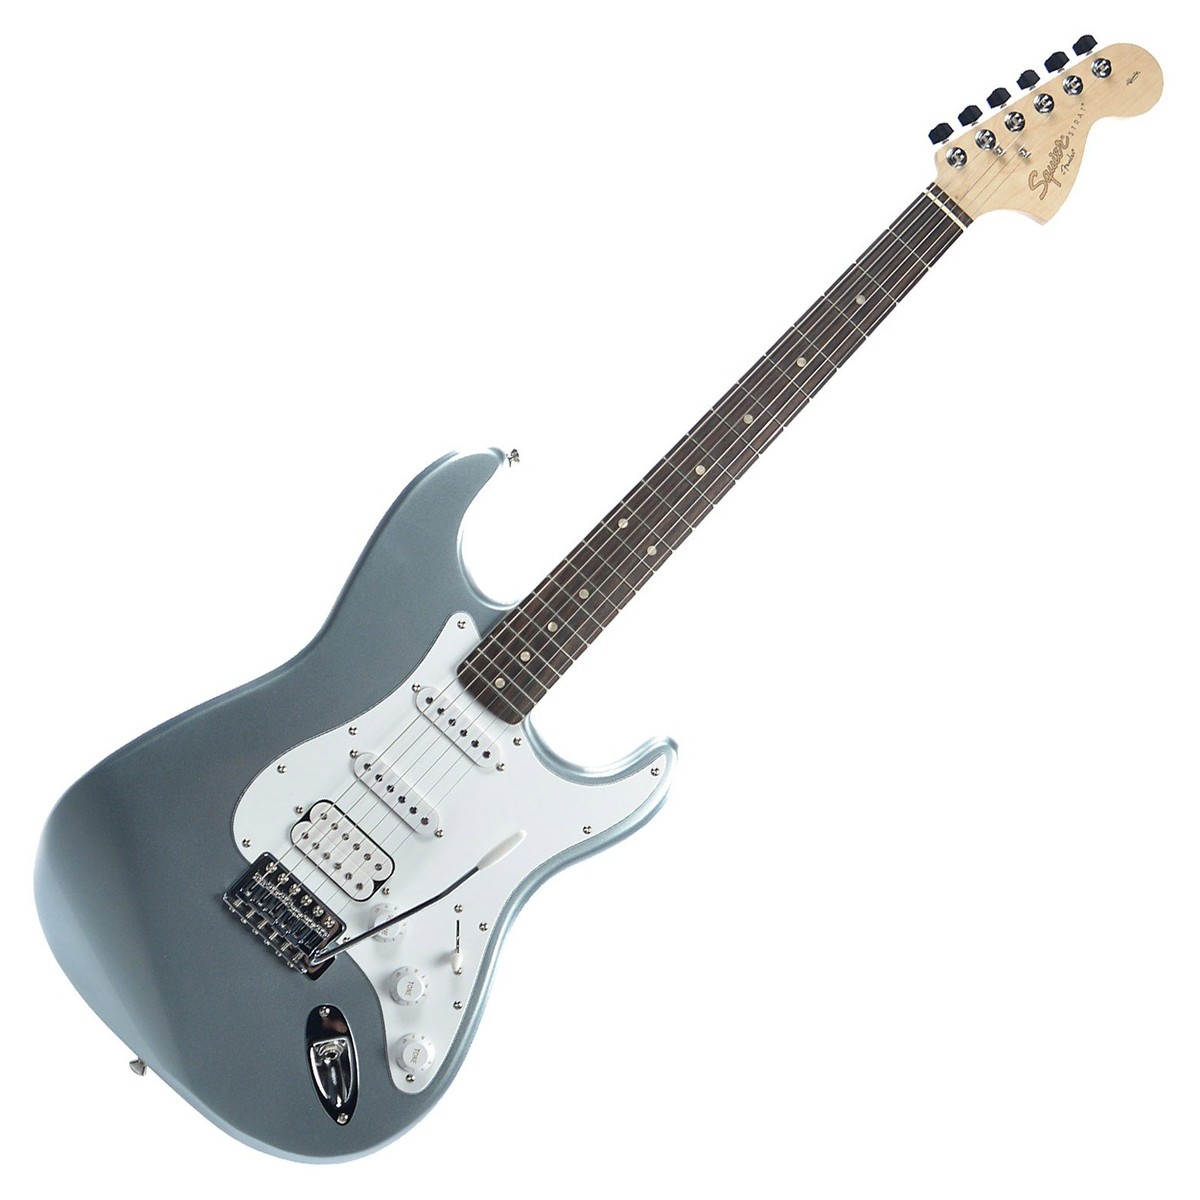 squier by fender affinity stratocaster hss slick silver at gear4music. Black Bedroom Furniture Sets. Home Design Ideas